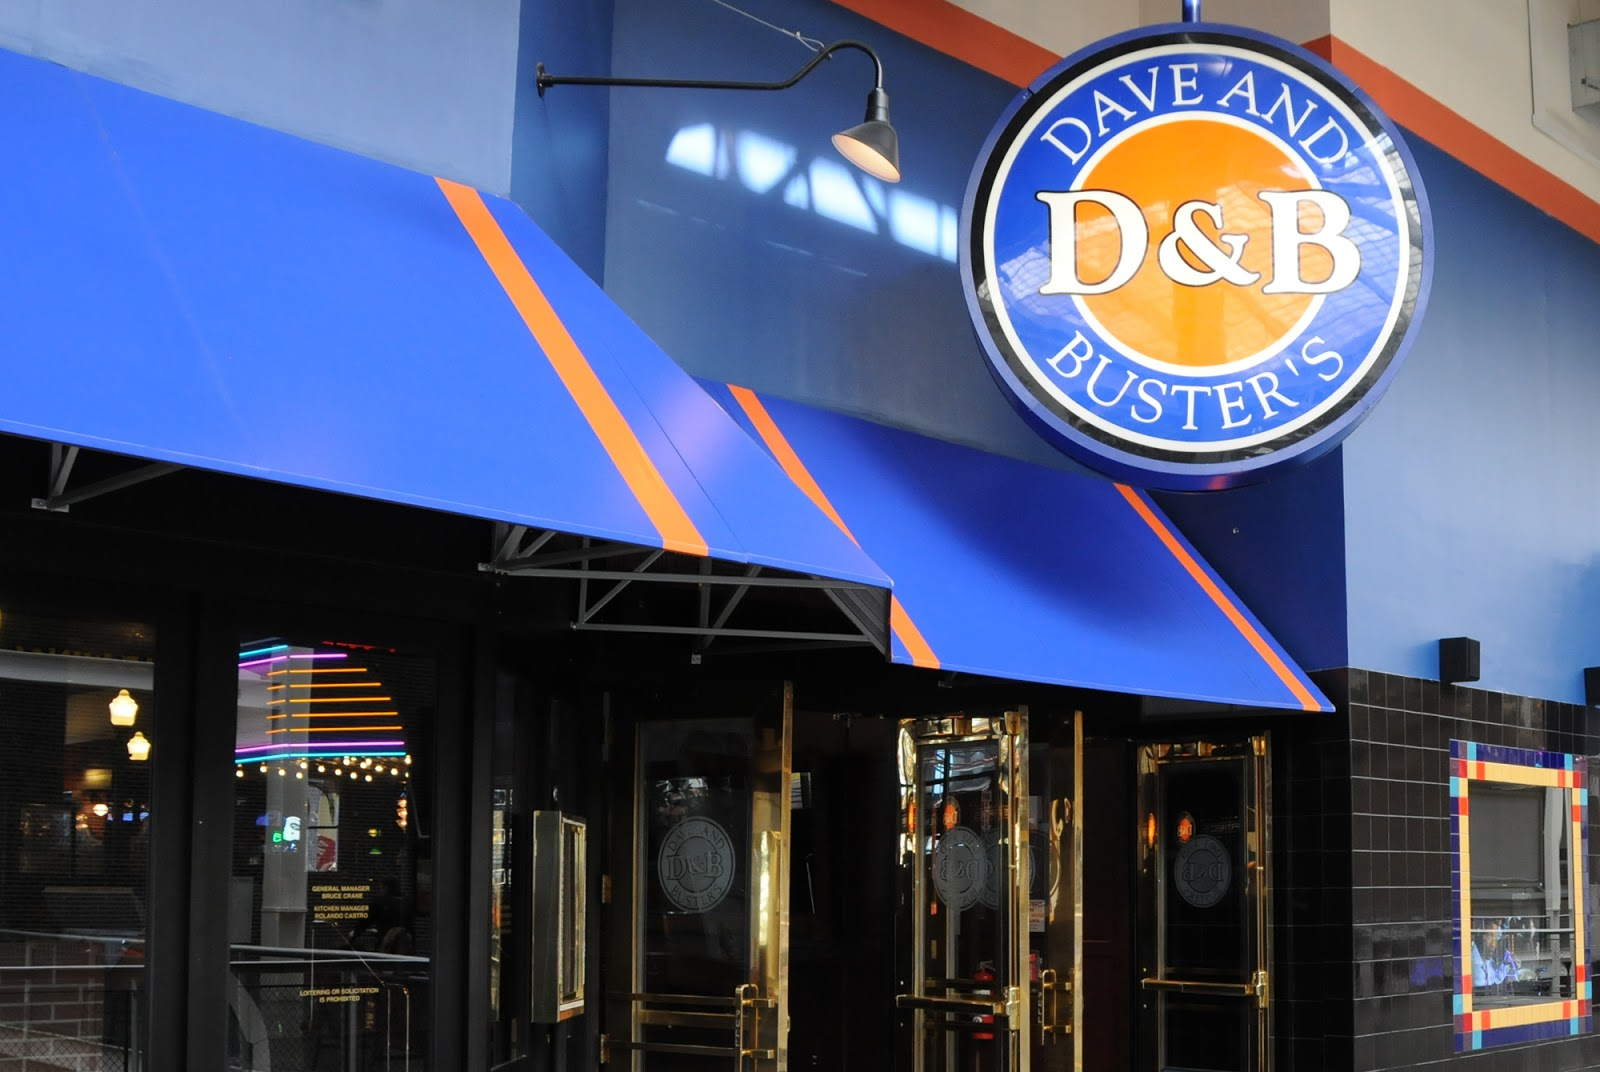 Dave and Buster's is a chain of entertainment restaurants offering its customers dining and entertainment under one roof. The menu includes fast food, cocktail drinks and indoor games such as billiards and shuffleboards.